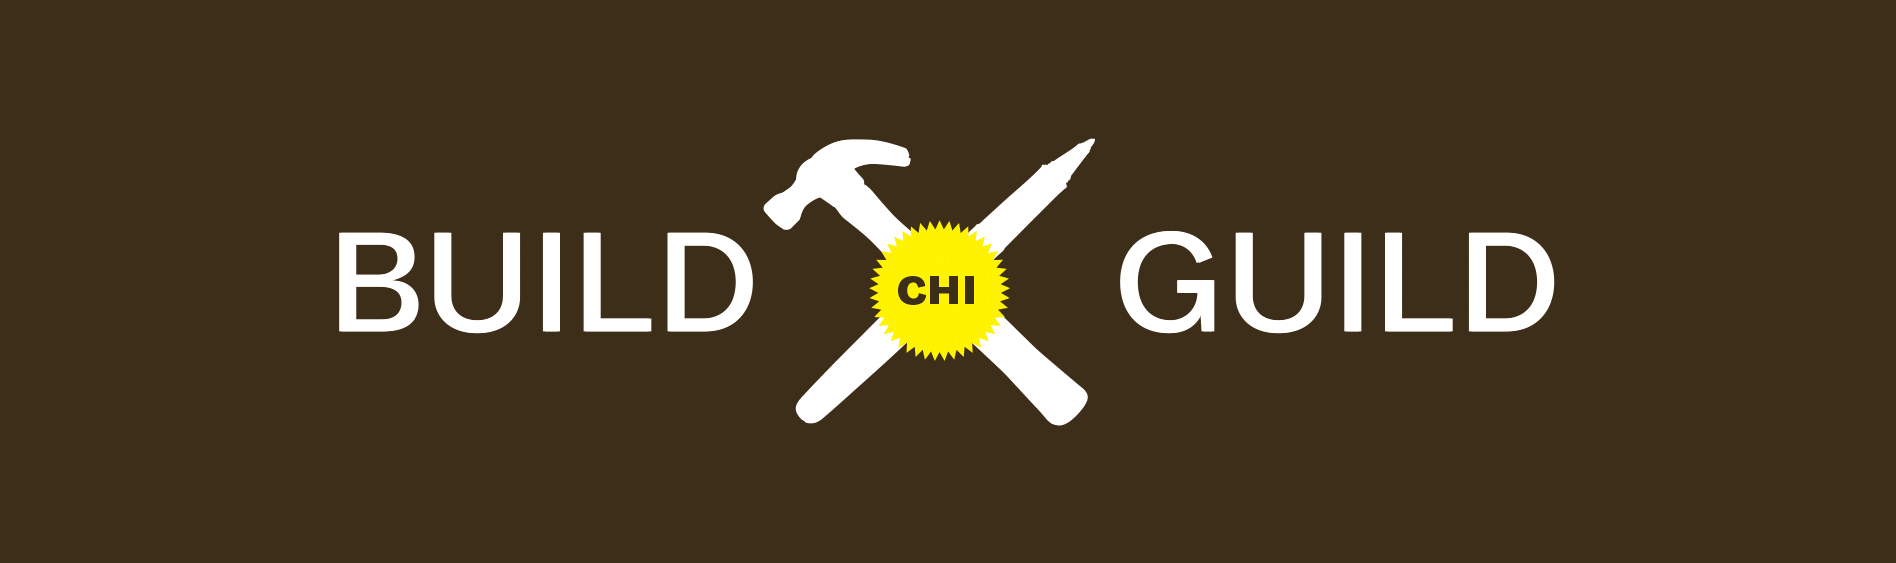 "The logo consists of a hammer, pencil, and saw blade. The elements come together in an ""x"" form indicating solidarity."